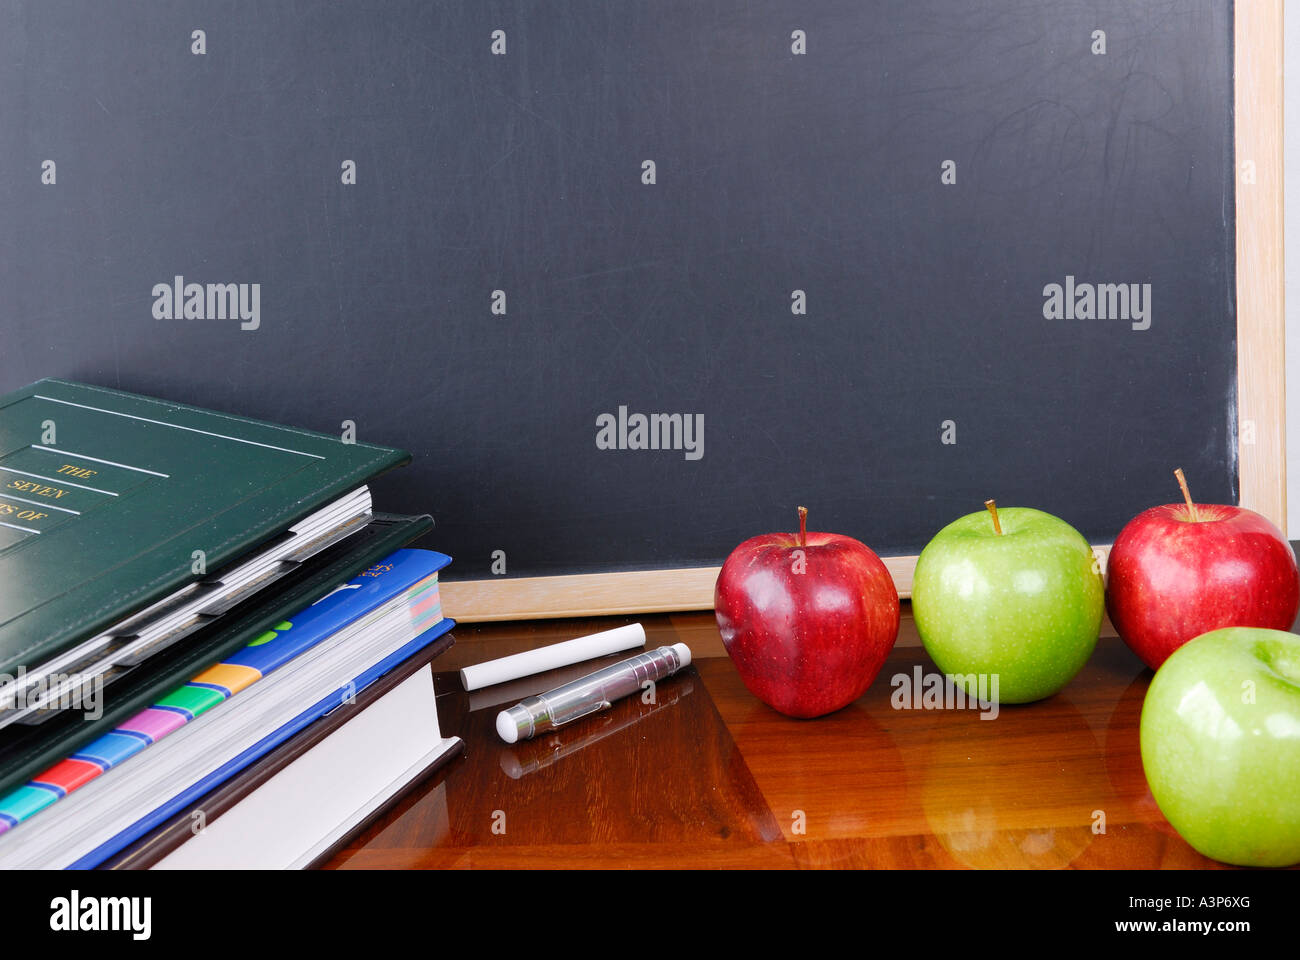 Blank blackboard with school books chalk and apples - Stock Image